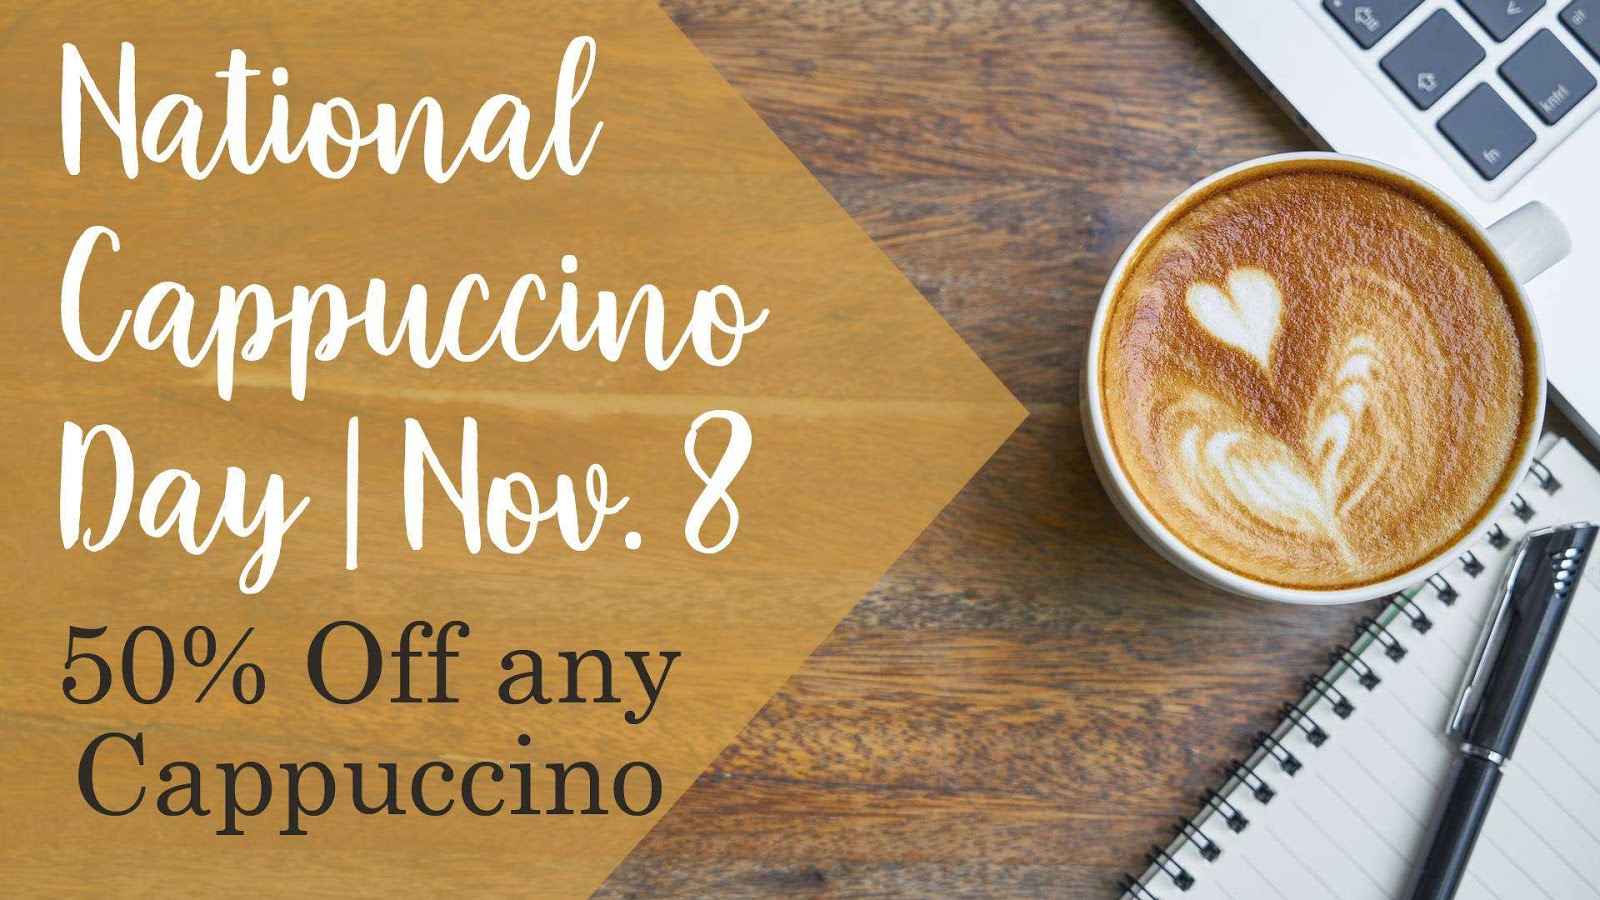 National Cappuccino Day Wishes Beautiful Image